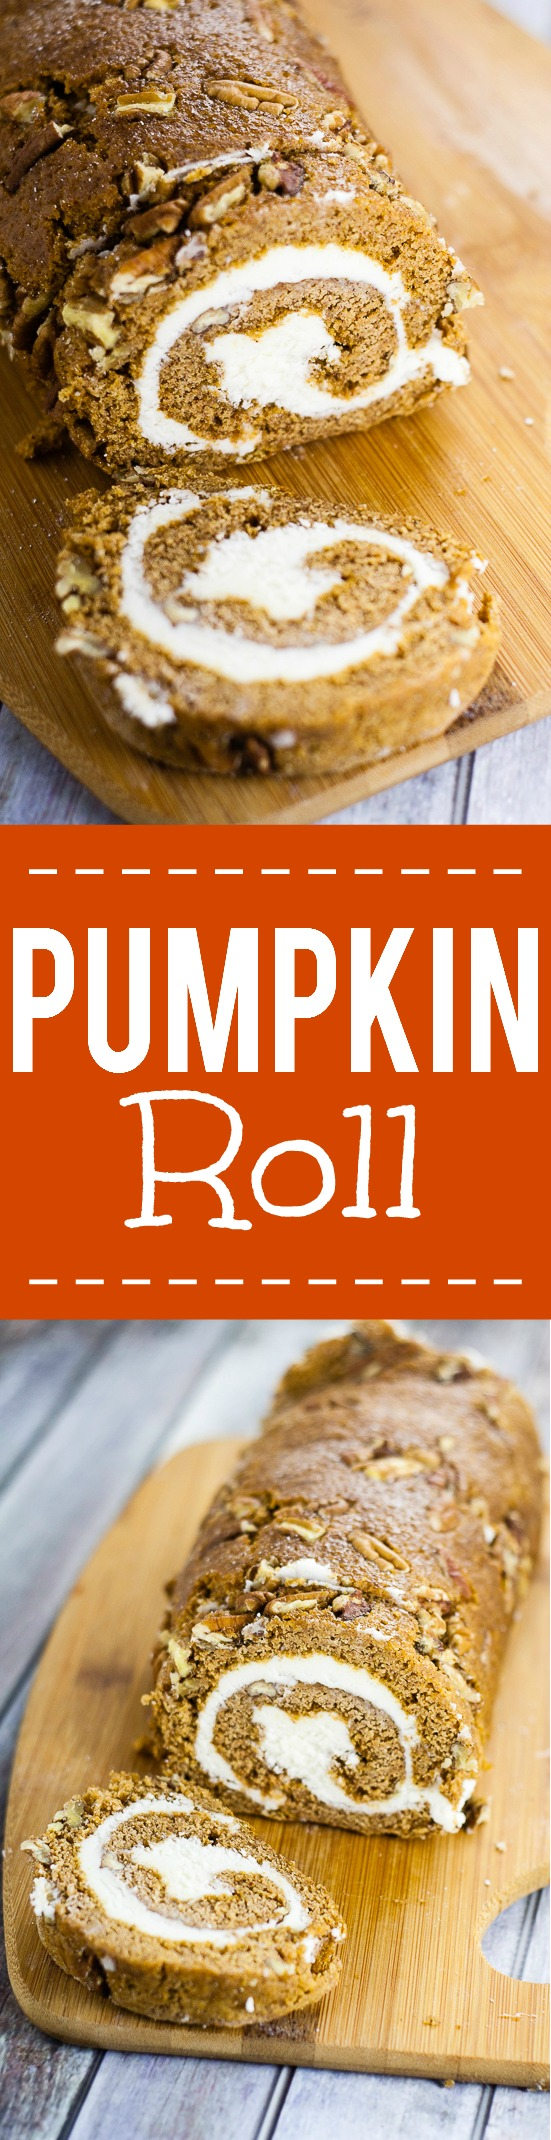 Classic Pumpkin Roll Recipe with Cream Cheese Filling - Try this festive, simple and classic Pumpkin cake Roll recipe with cream cheese filling straight from Granny's kitchen for a scrumptious crowd-pleasing Fall dessert recipe!